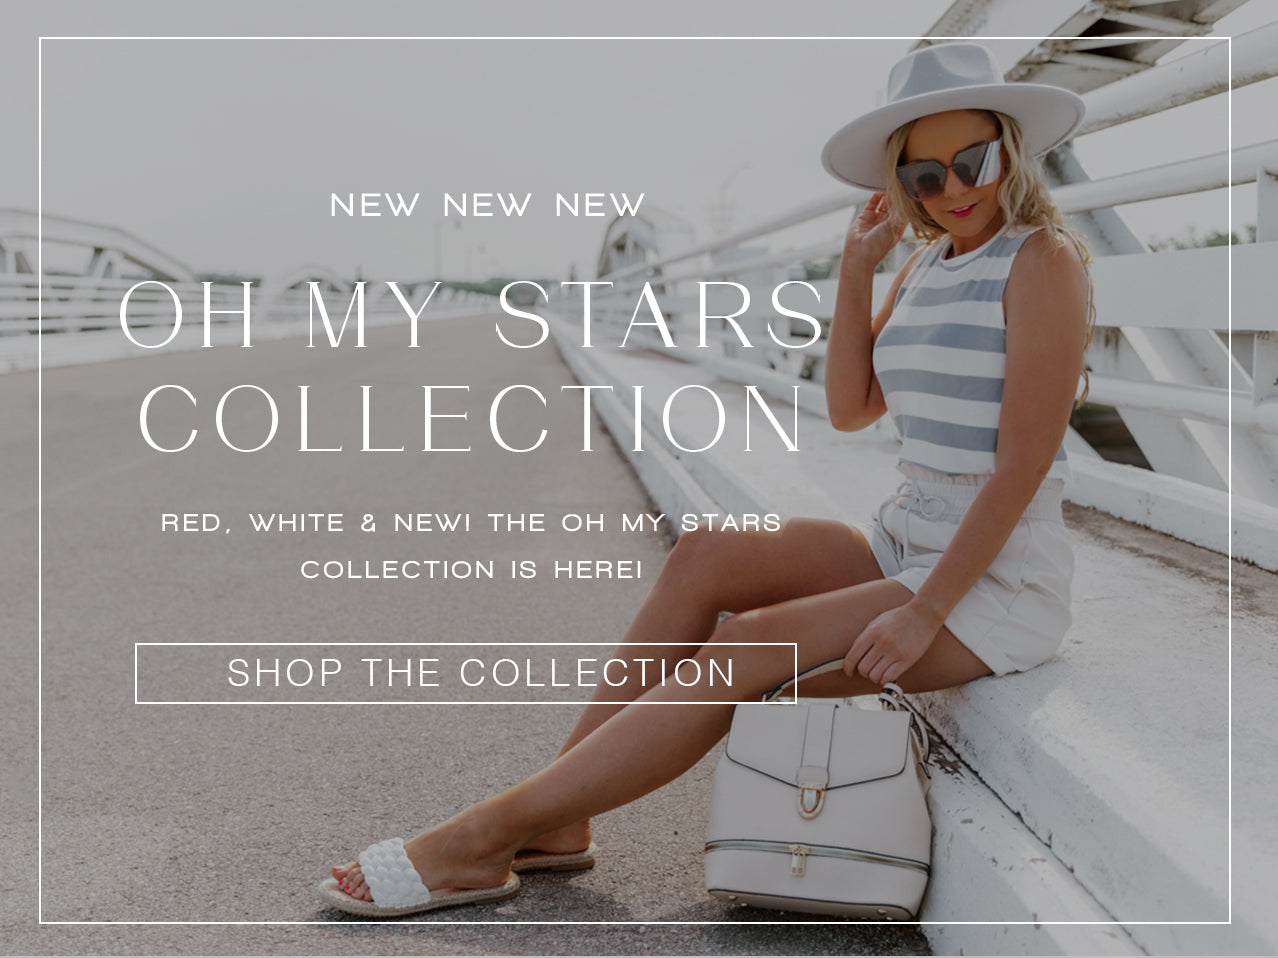 The Oh My Stars Collection